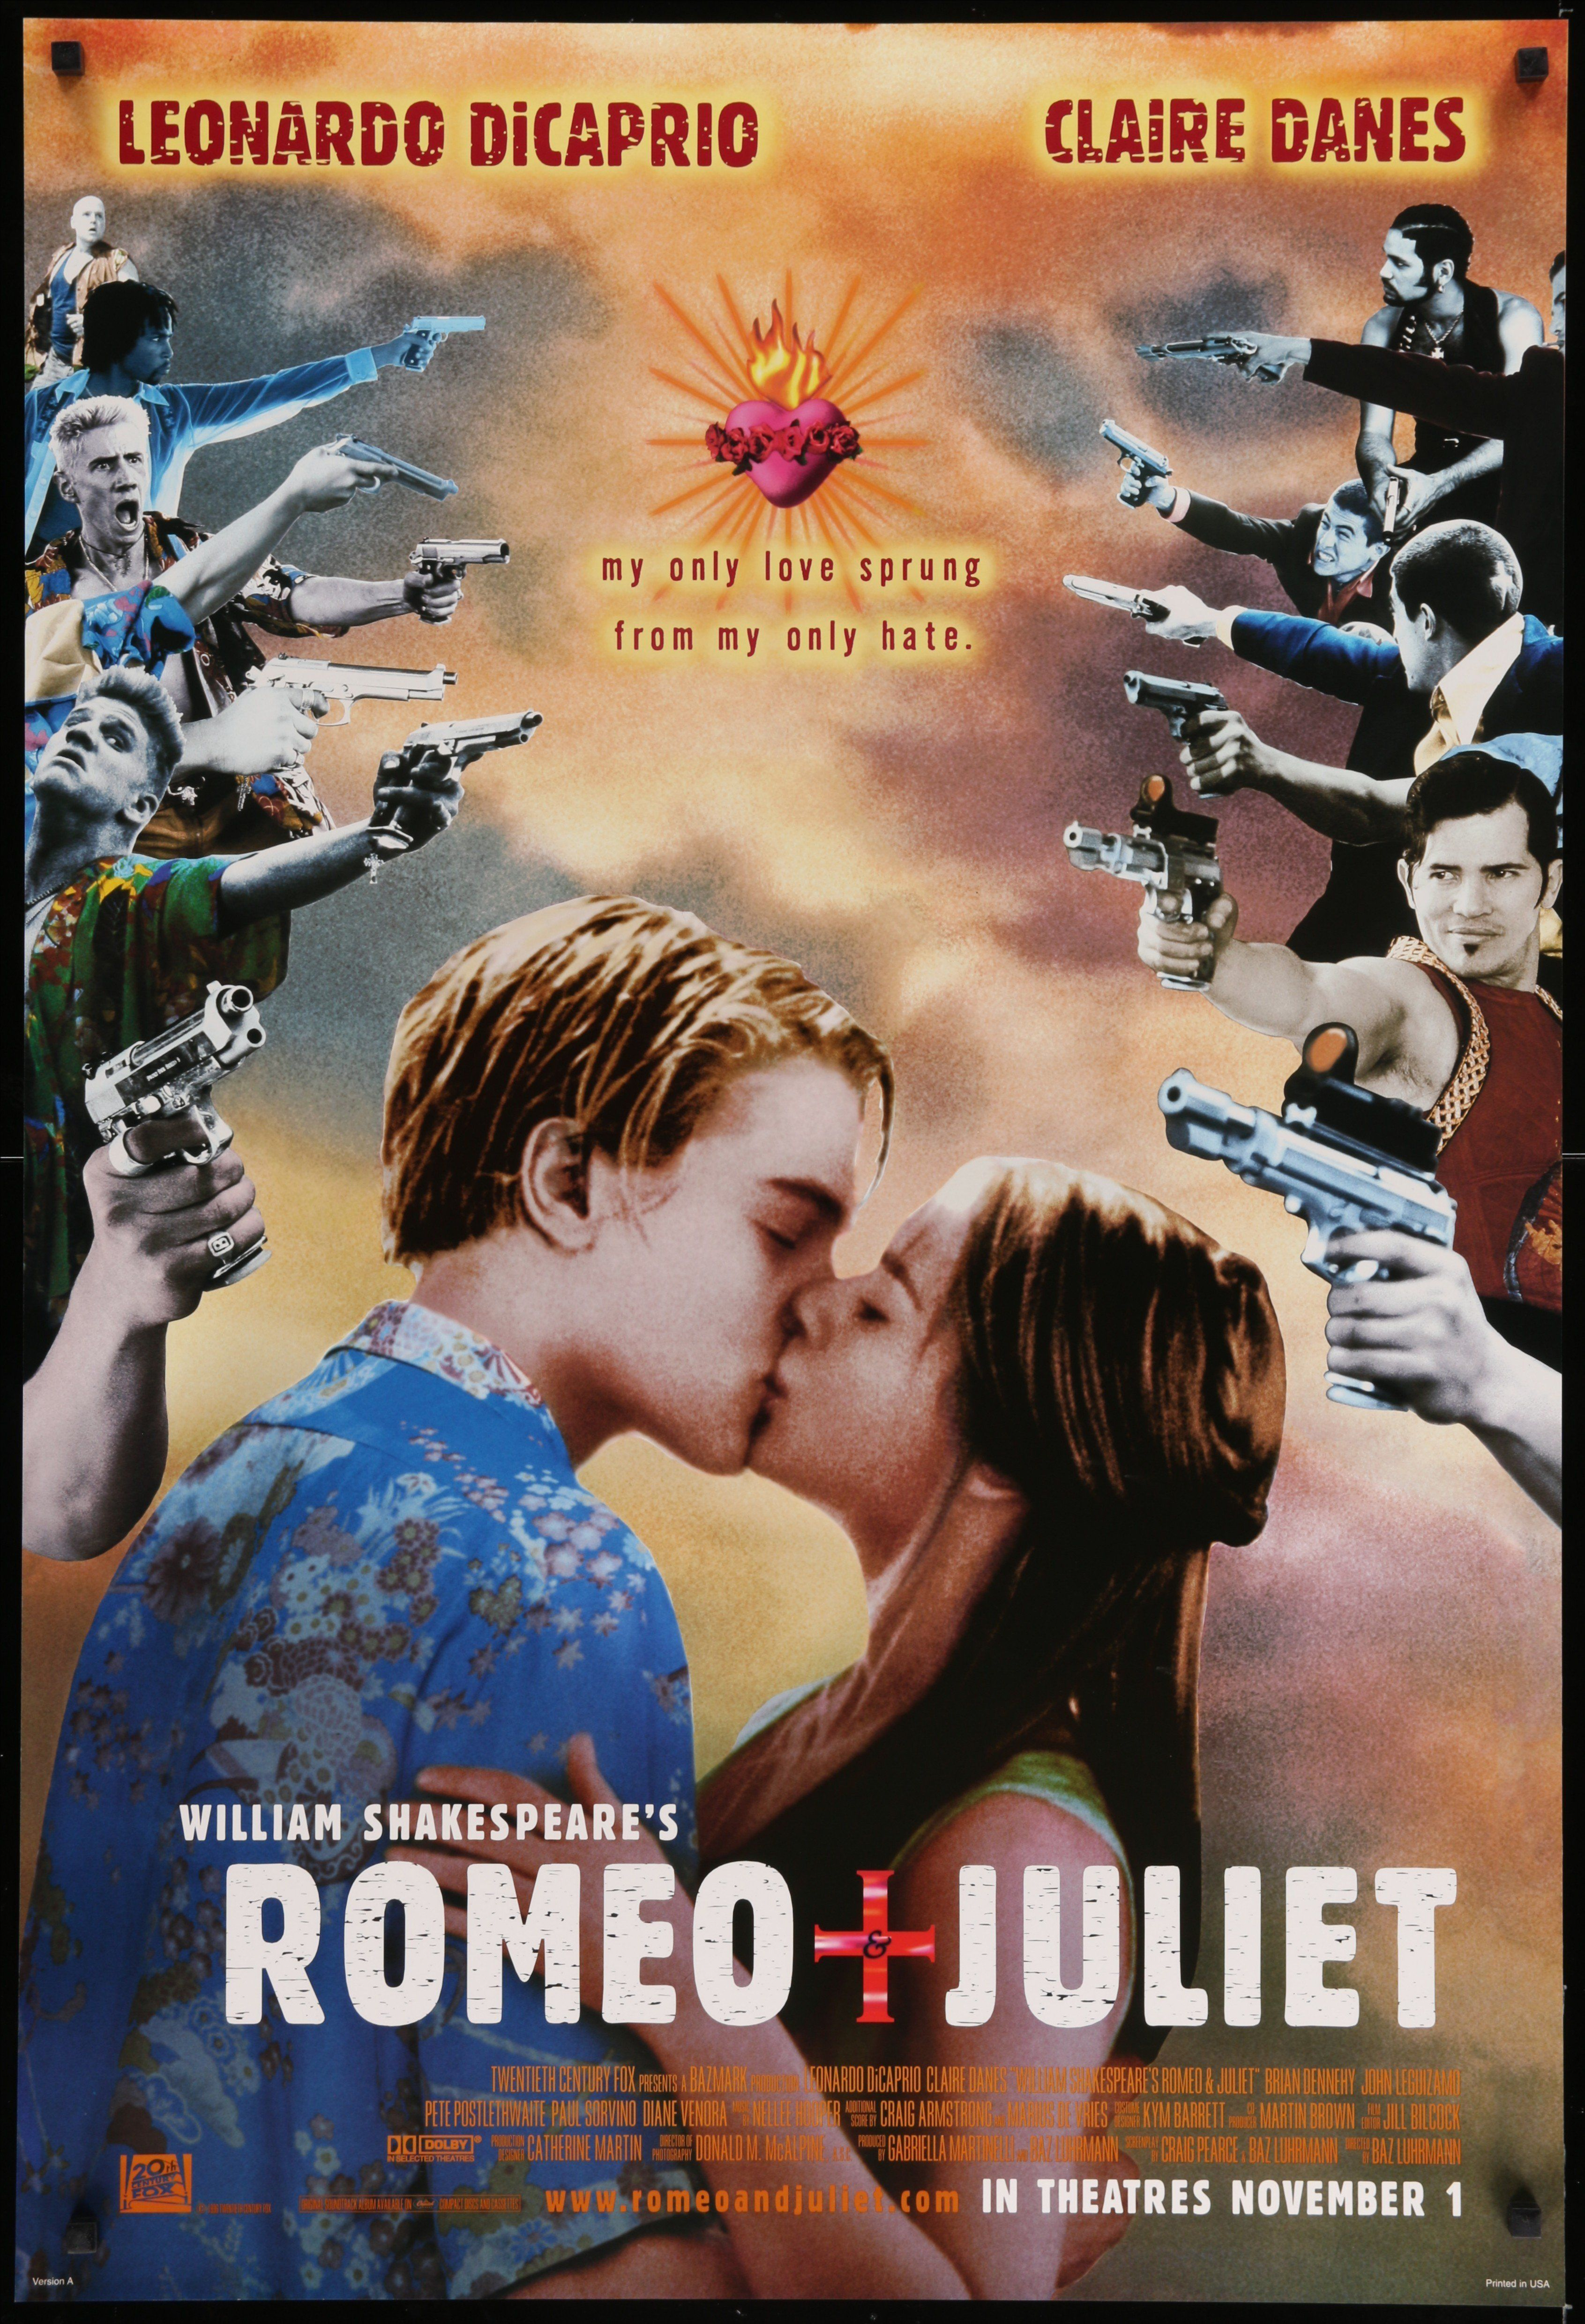 """Condition: Very Good to Excellent. Never folded! Free shipping within the UK. A low flat rate for the rest of the world. Size: 69 cm x 101 cm (27 in x 39.75 in) A guaranteed original one sheet movie poster from 1996 for Baz Luhrmann's romantic tragedy """"Romeo and Juliet"""", based on the play by William Shakespeare. A modernisation of Shakepeare's original story, the movie stars young looking Leonardo Di Caprio (as 'Romeo') and Claire Danes (as 'Juliet') as they fall in love, despite being members o"""